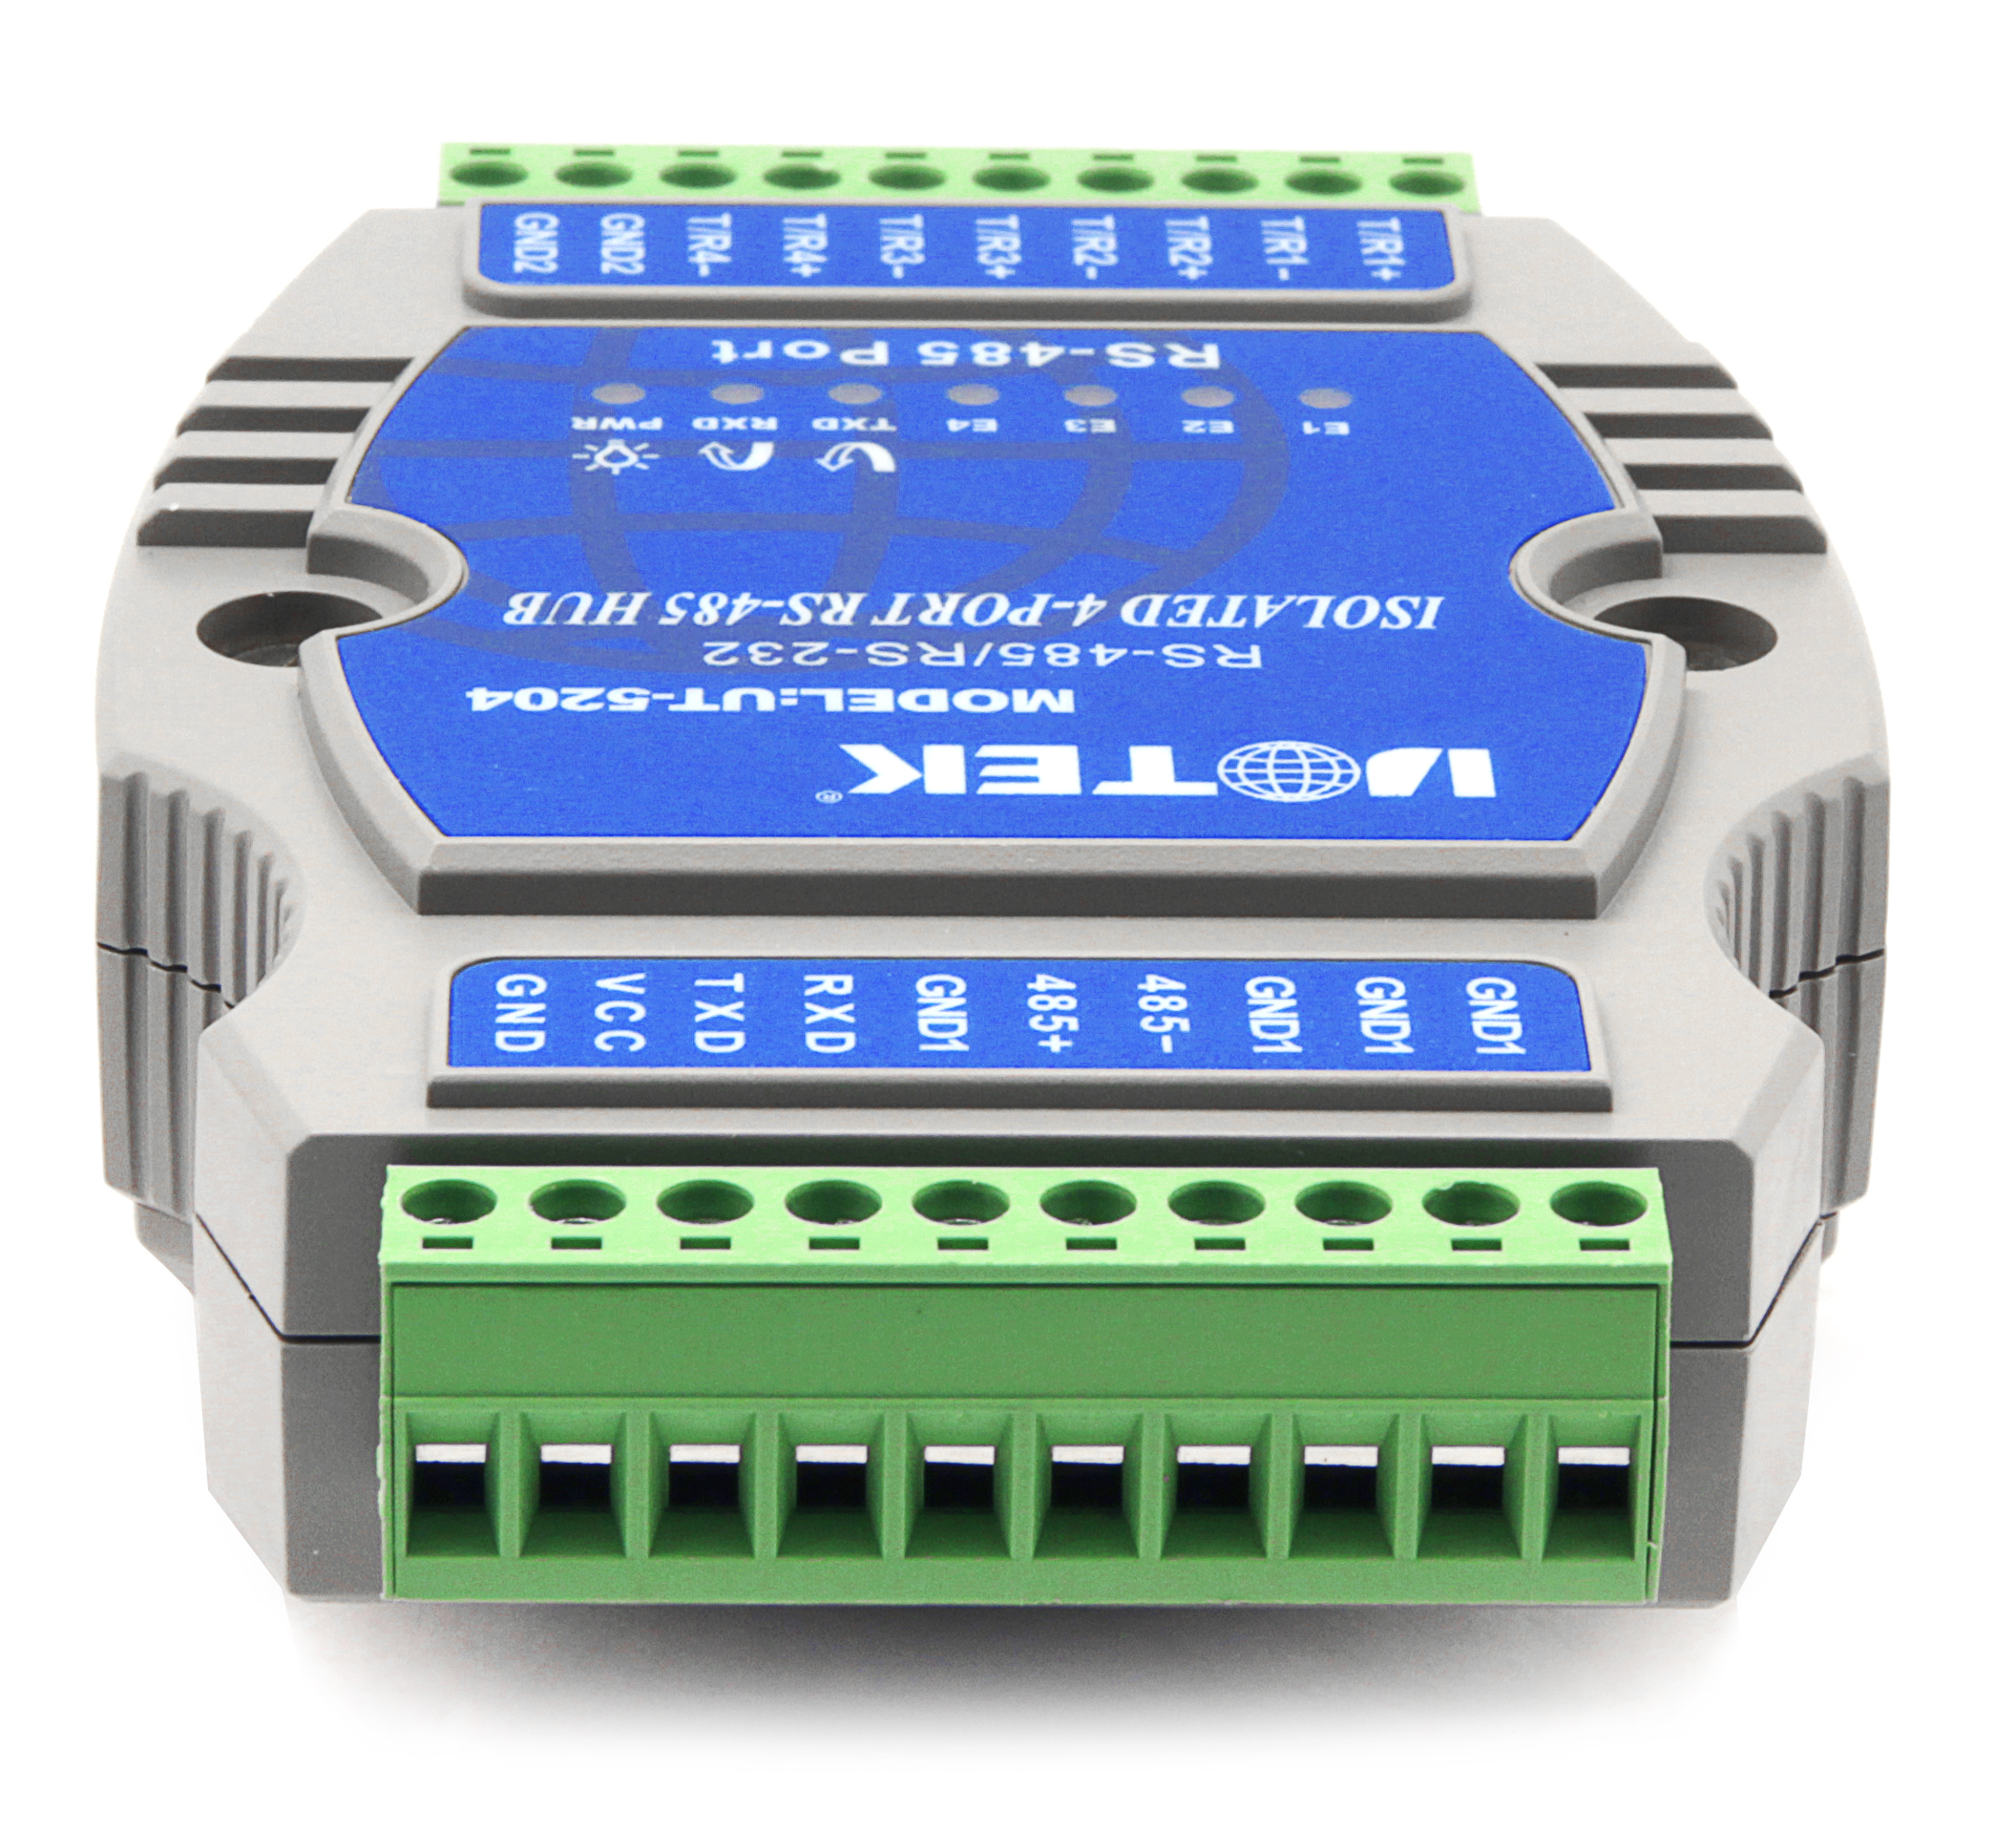 485 Hub 4 Ports Photoelectric Isolation Industrial Lightning Protection 1 Route to 4 Route RS485 Distributor